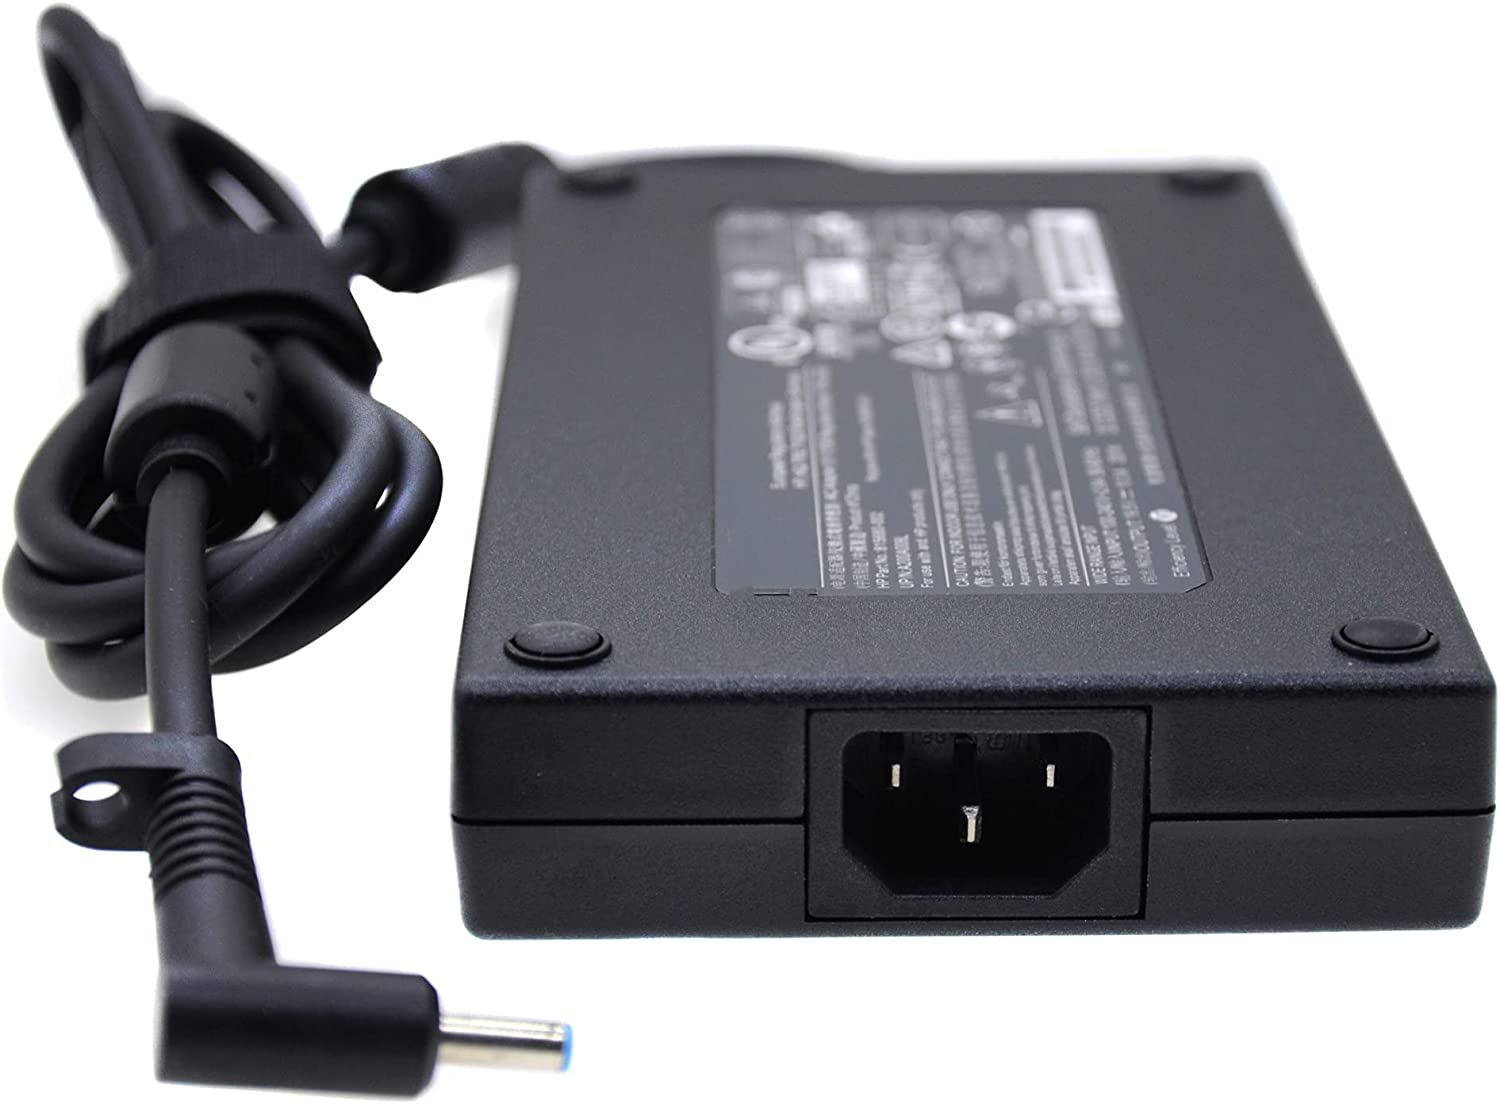 New 19.5V 10.3A 200W AC Adapter Compatible with HP ZBook 17 G3 17 G4 ZBook Studio G3 G4 G5 Pavilion Gaming 15-cx TPN-CA03 815680-002 835888-001 Laptop Charger Power Supply Connector 4.5mm x 3.0mm